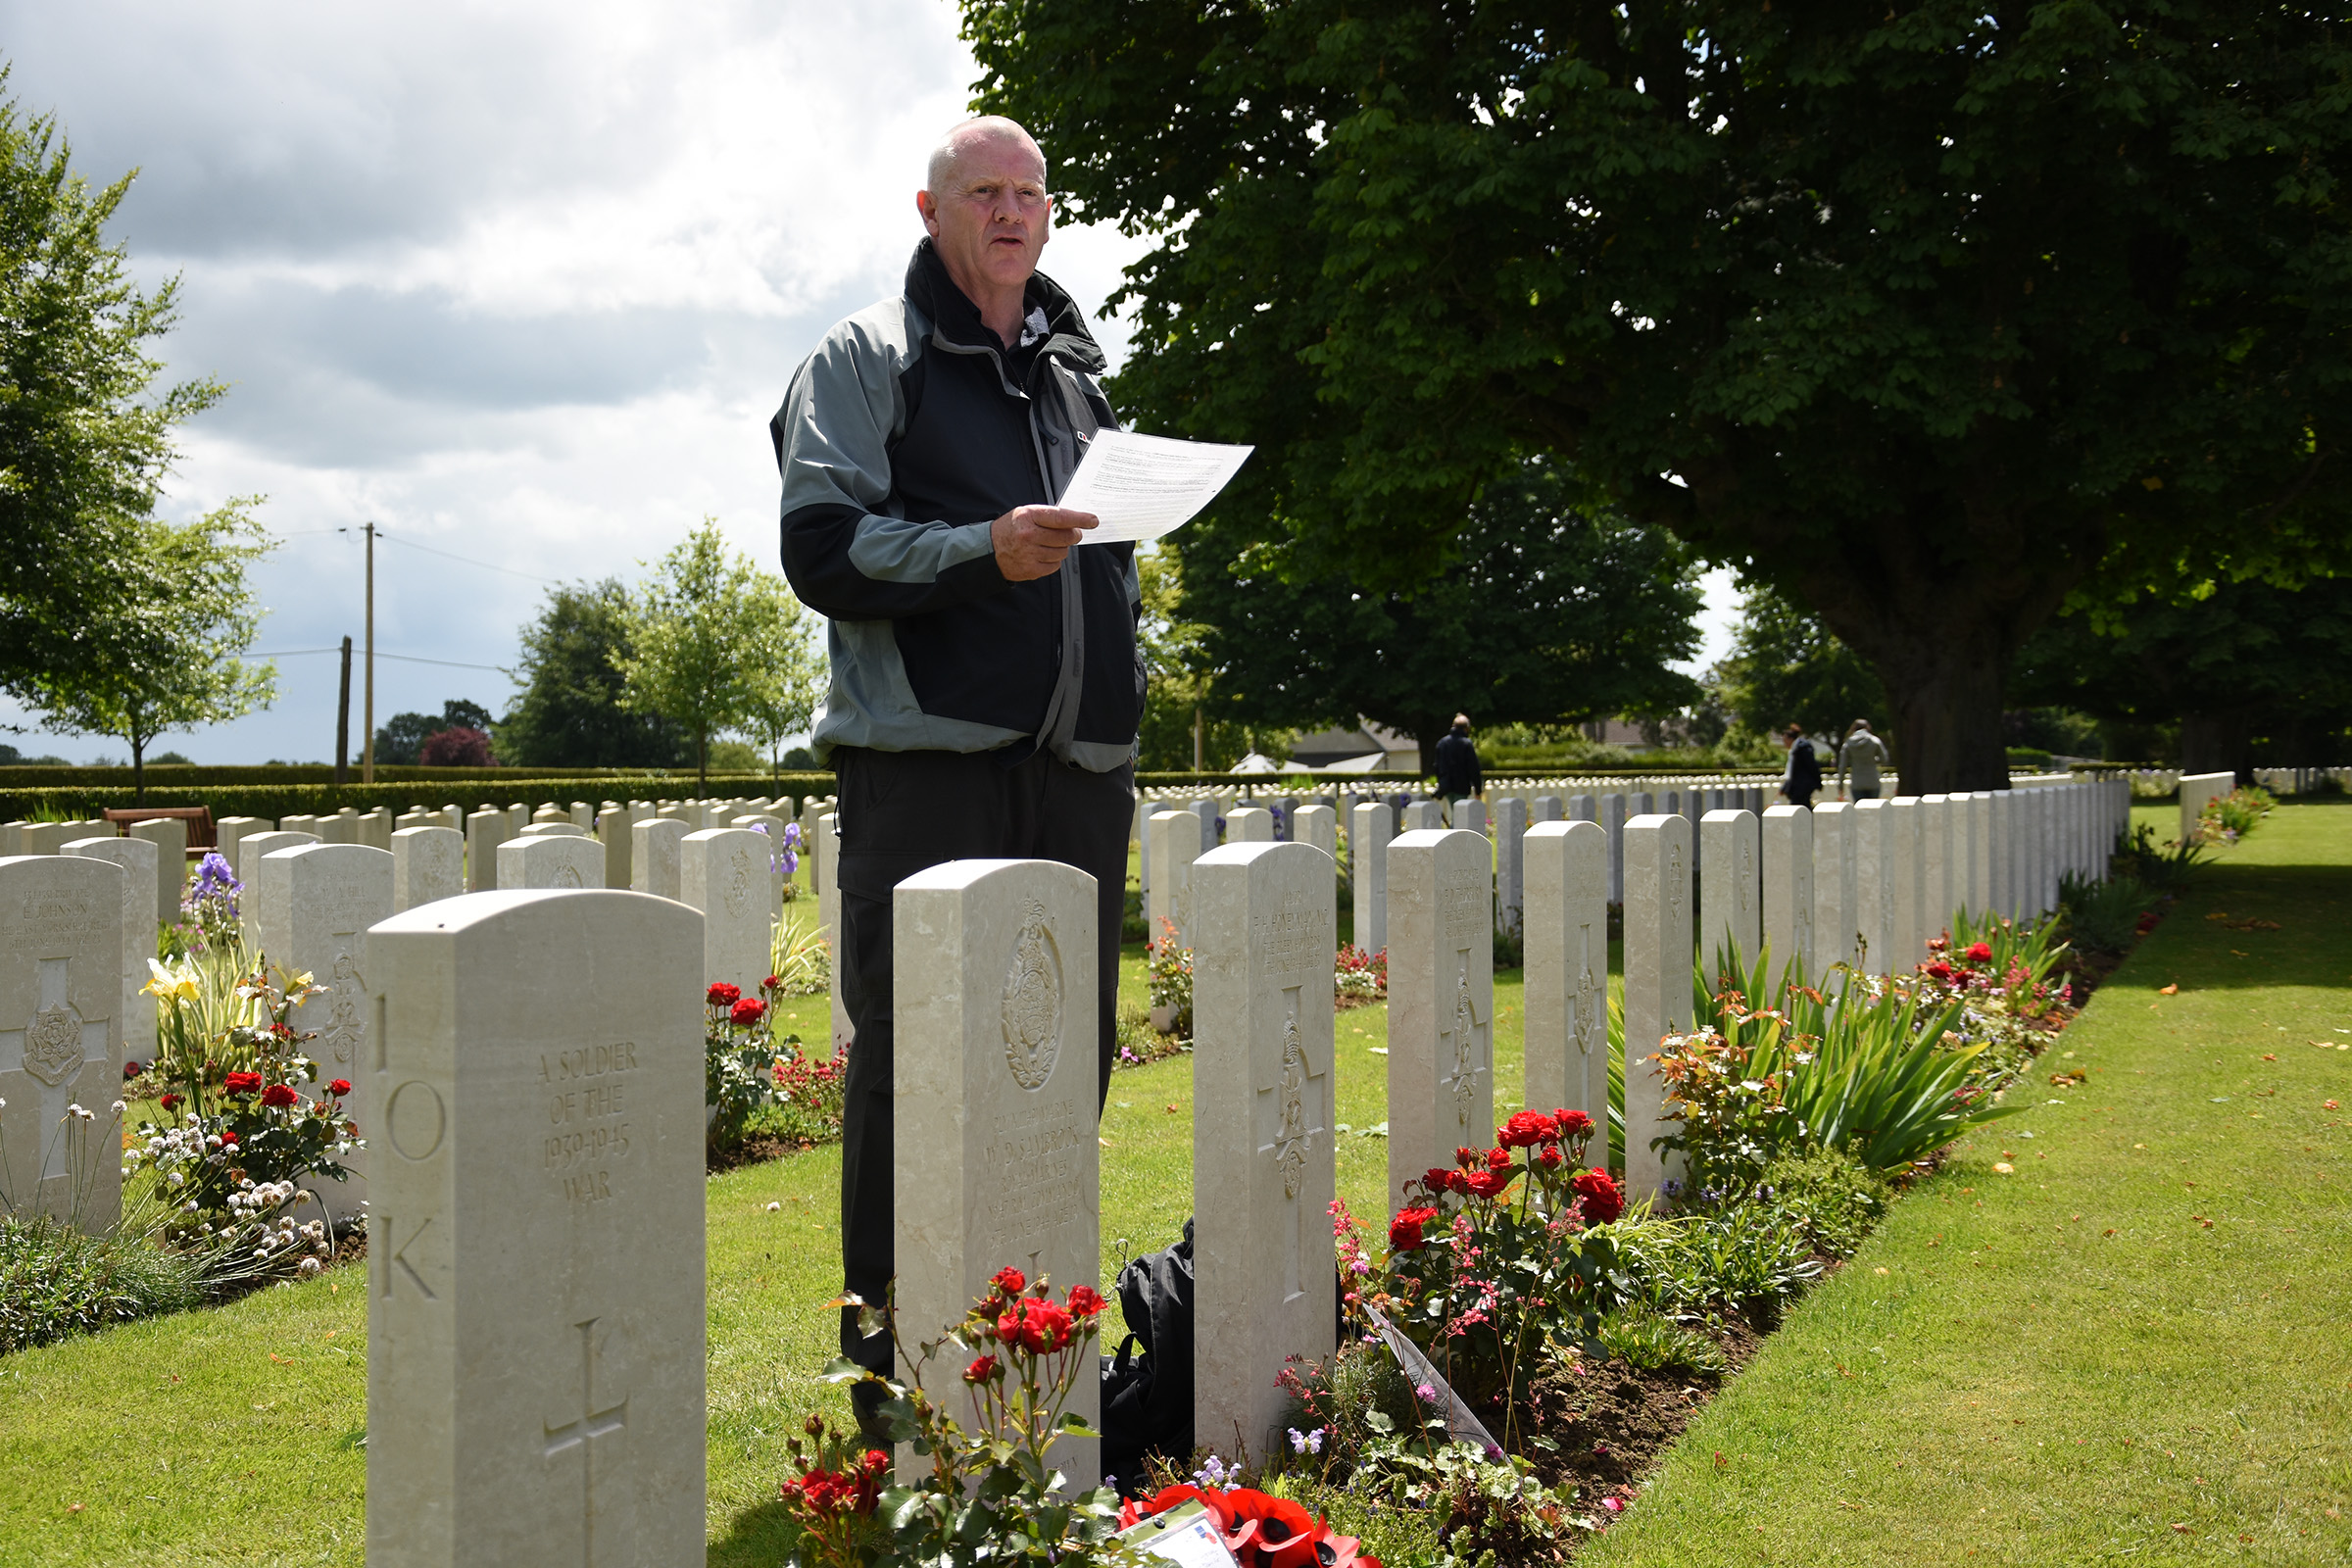 Capt. Shaun Mallinson , stood at the graveside of Maj. Lofthouse, OC of 6th Battalion The Green Howards, on D-Day